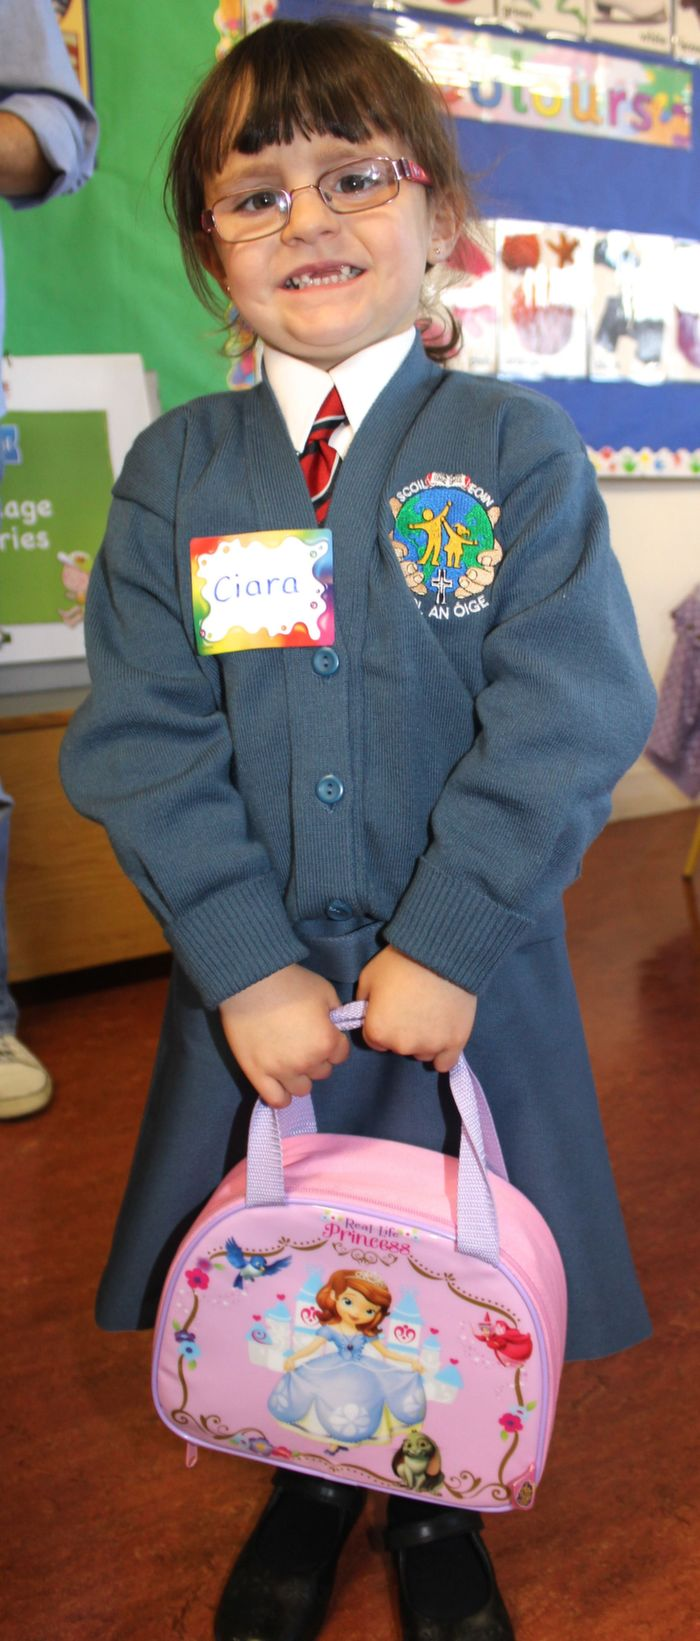 Starting her first day of school in Scoil Eoin was Ciara O'Shea. Photo by Gavin O'Connor.